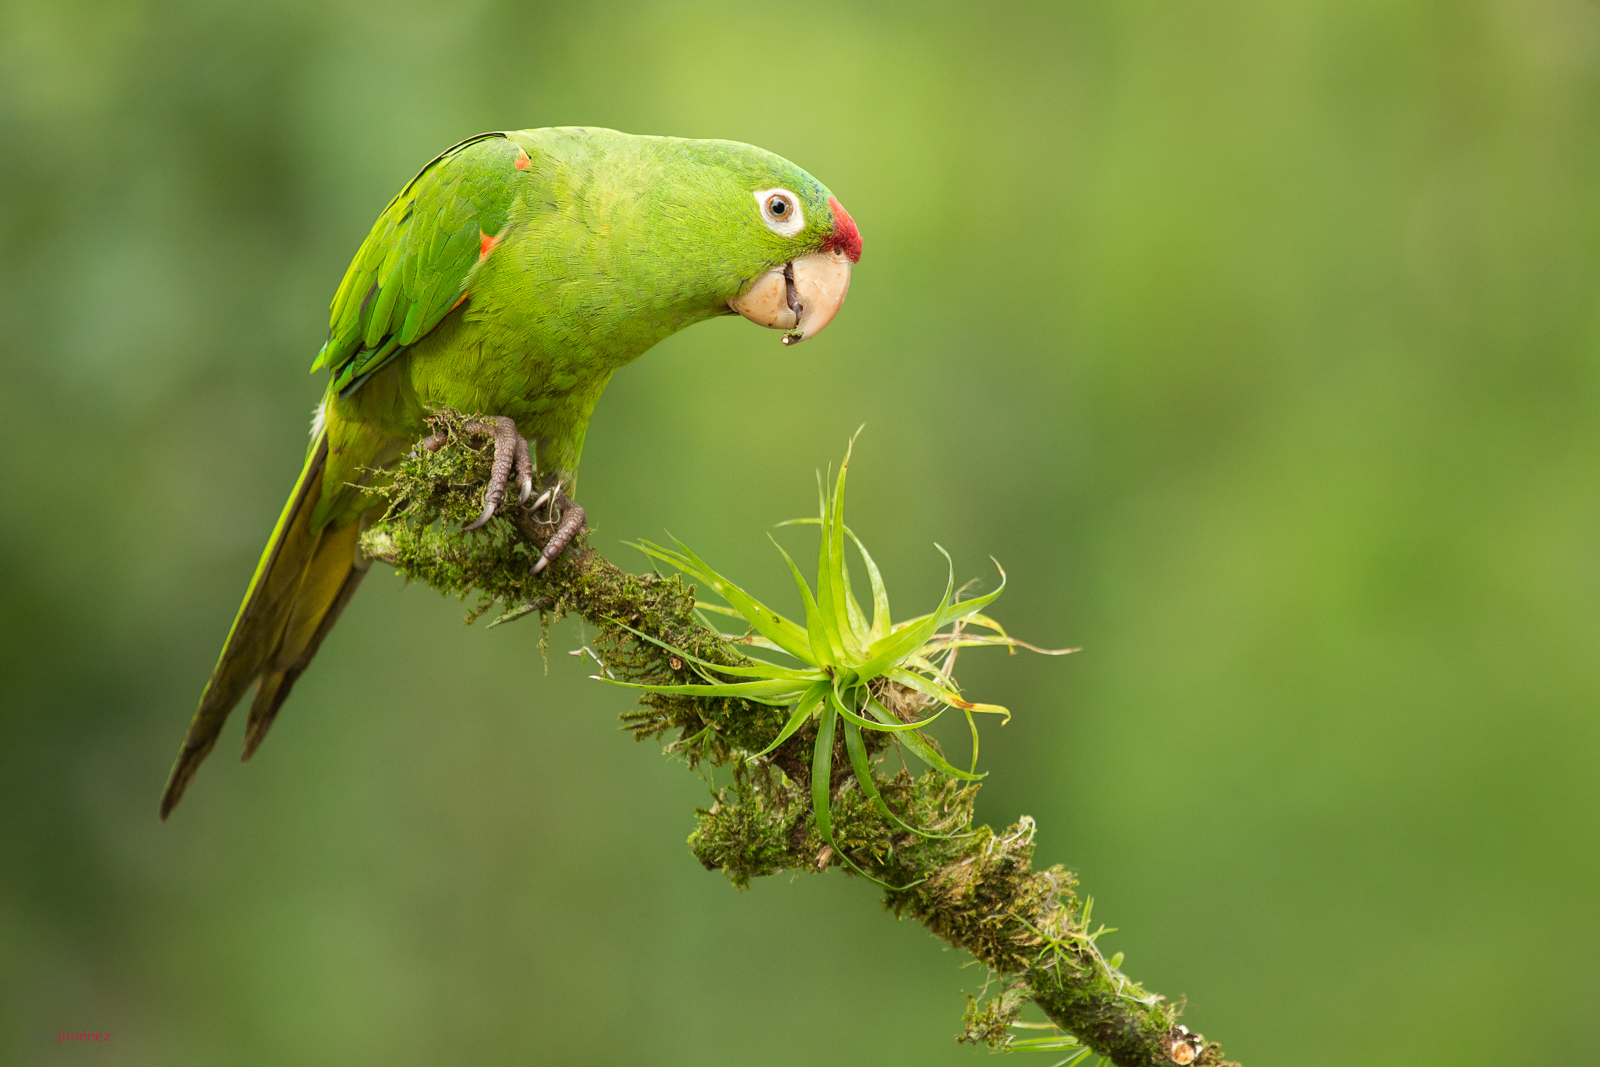 Crimson-fronted Parakeet (Psittacara finschi) perched on a branch at the low land forest of Costa Rica